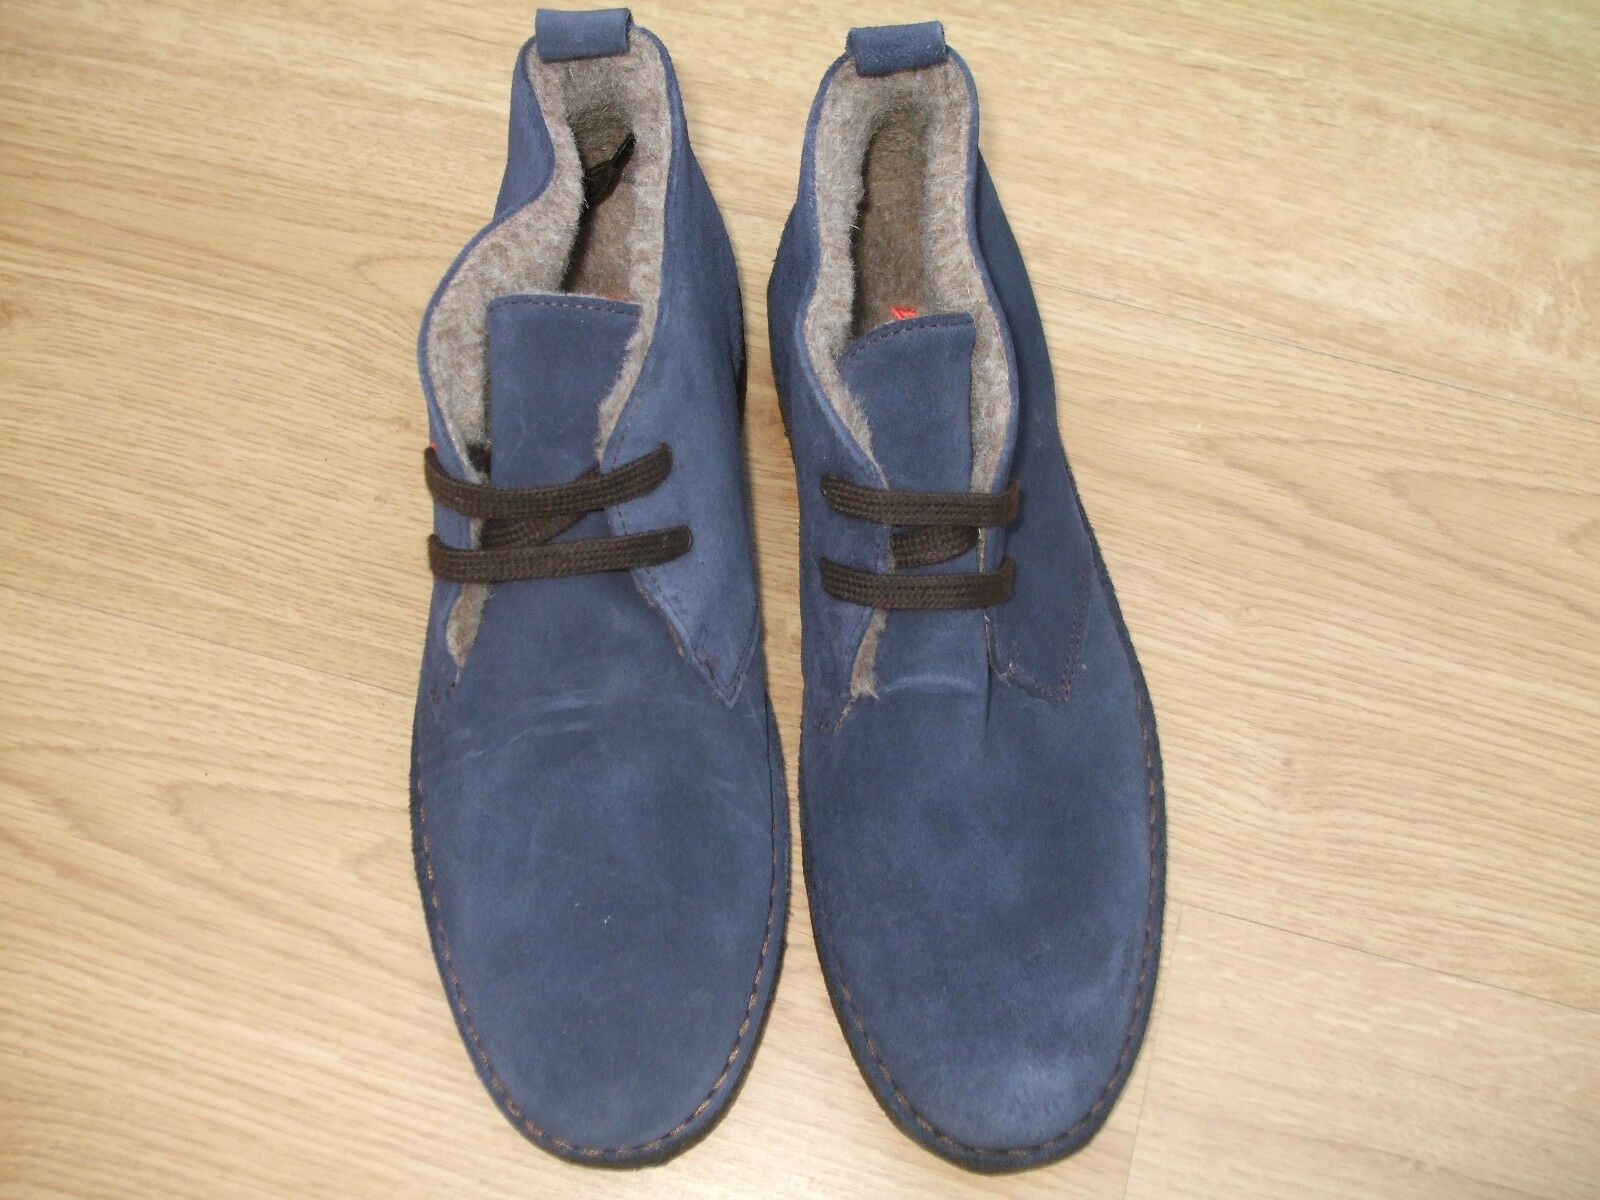 BODEN NAVY  SUEDE LACE UP 40==6.5 ANKLE Stiefel SIZE ==SIZE 40==6.5 UP BNWOB 8f650a